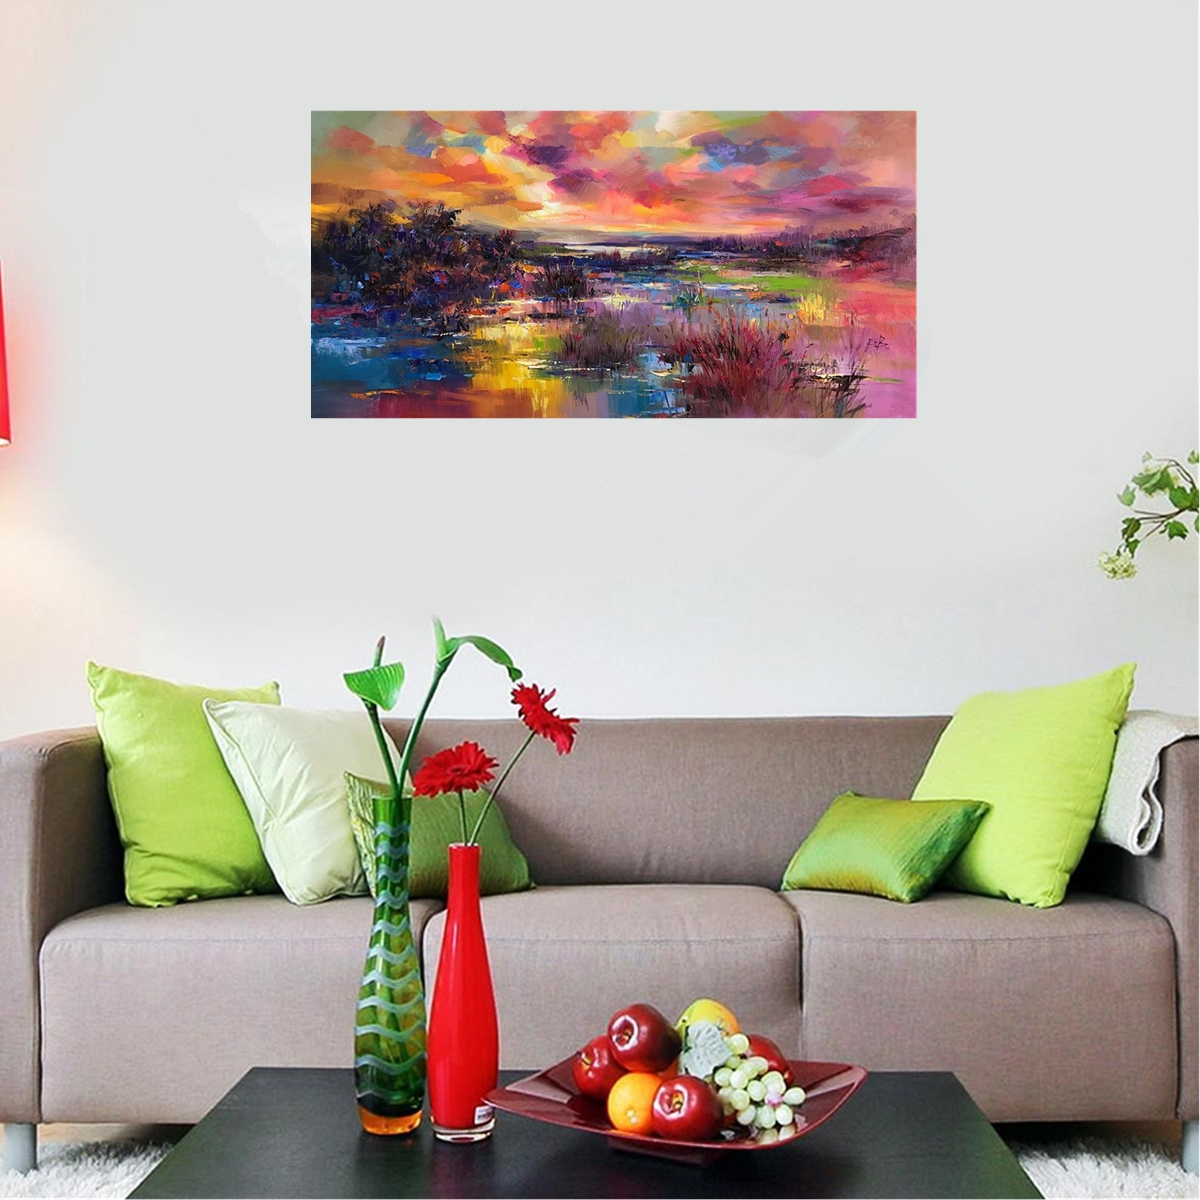 60*120cm Modern Hand-painted Oil Paintings Abstract Art Decor On Canvas Unframed